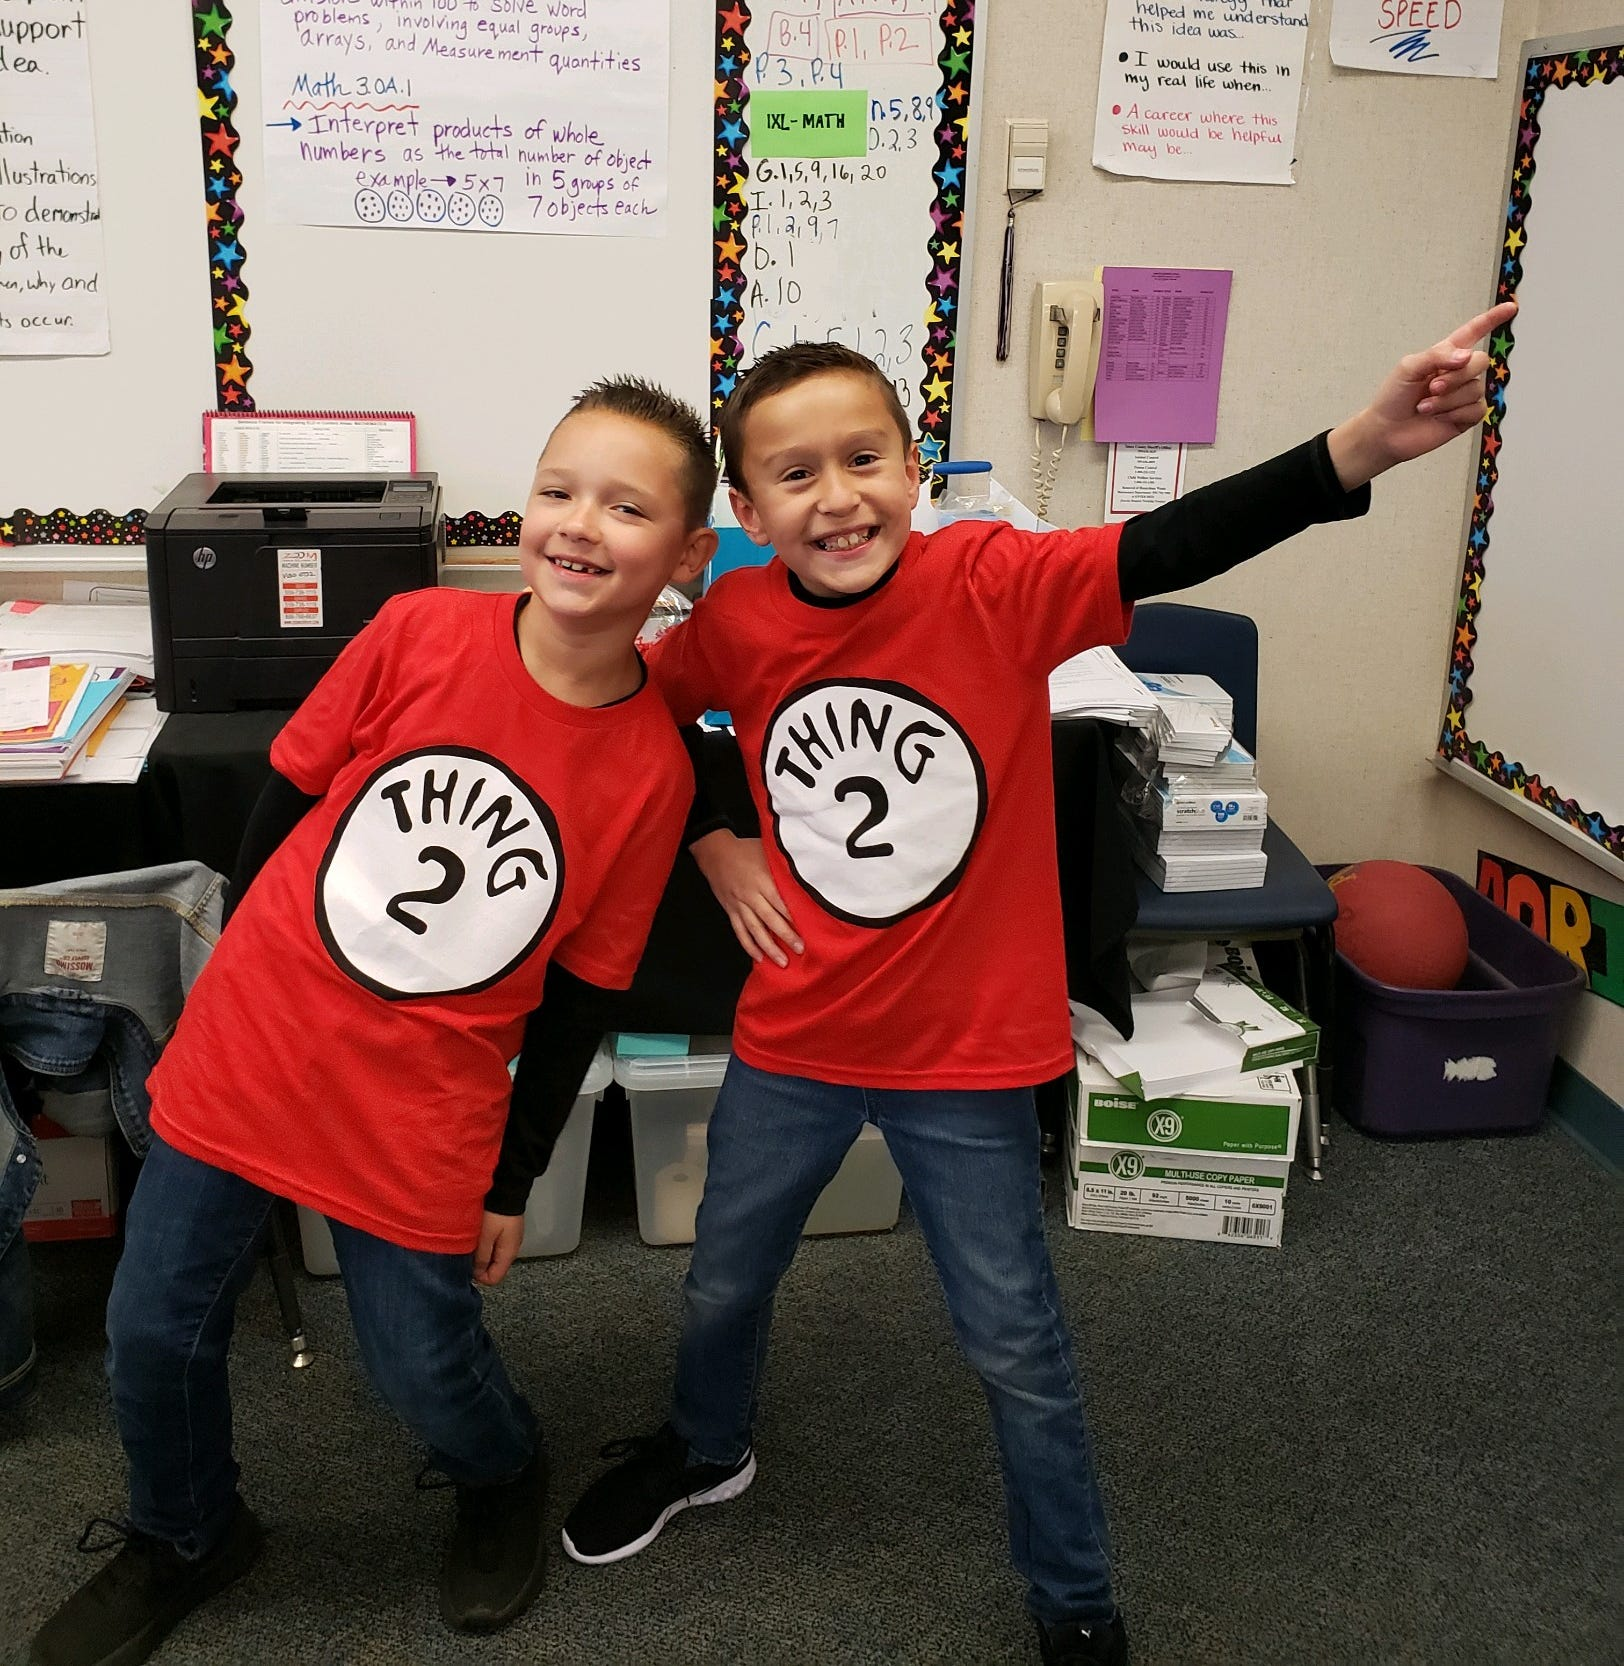 Best friends Jake Robison, 9, pictured left, and Colton Domingues play in their third-grade classroom at Linwood Elementary.